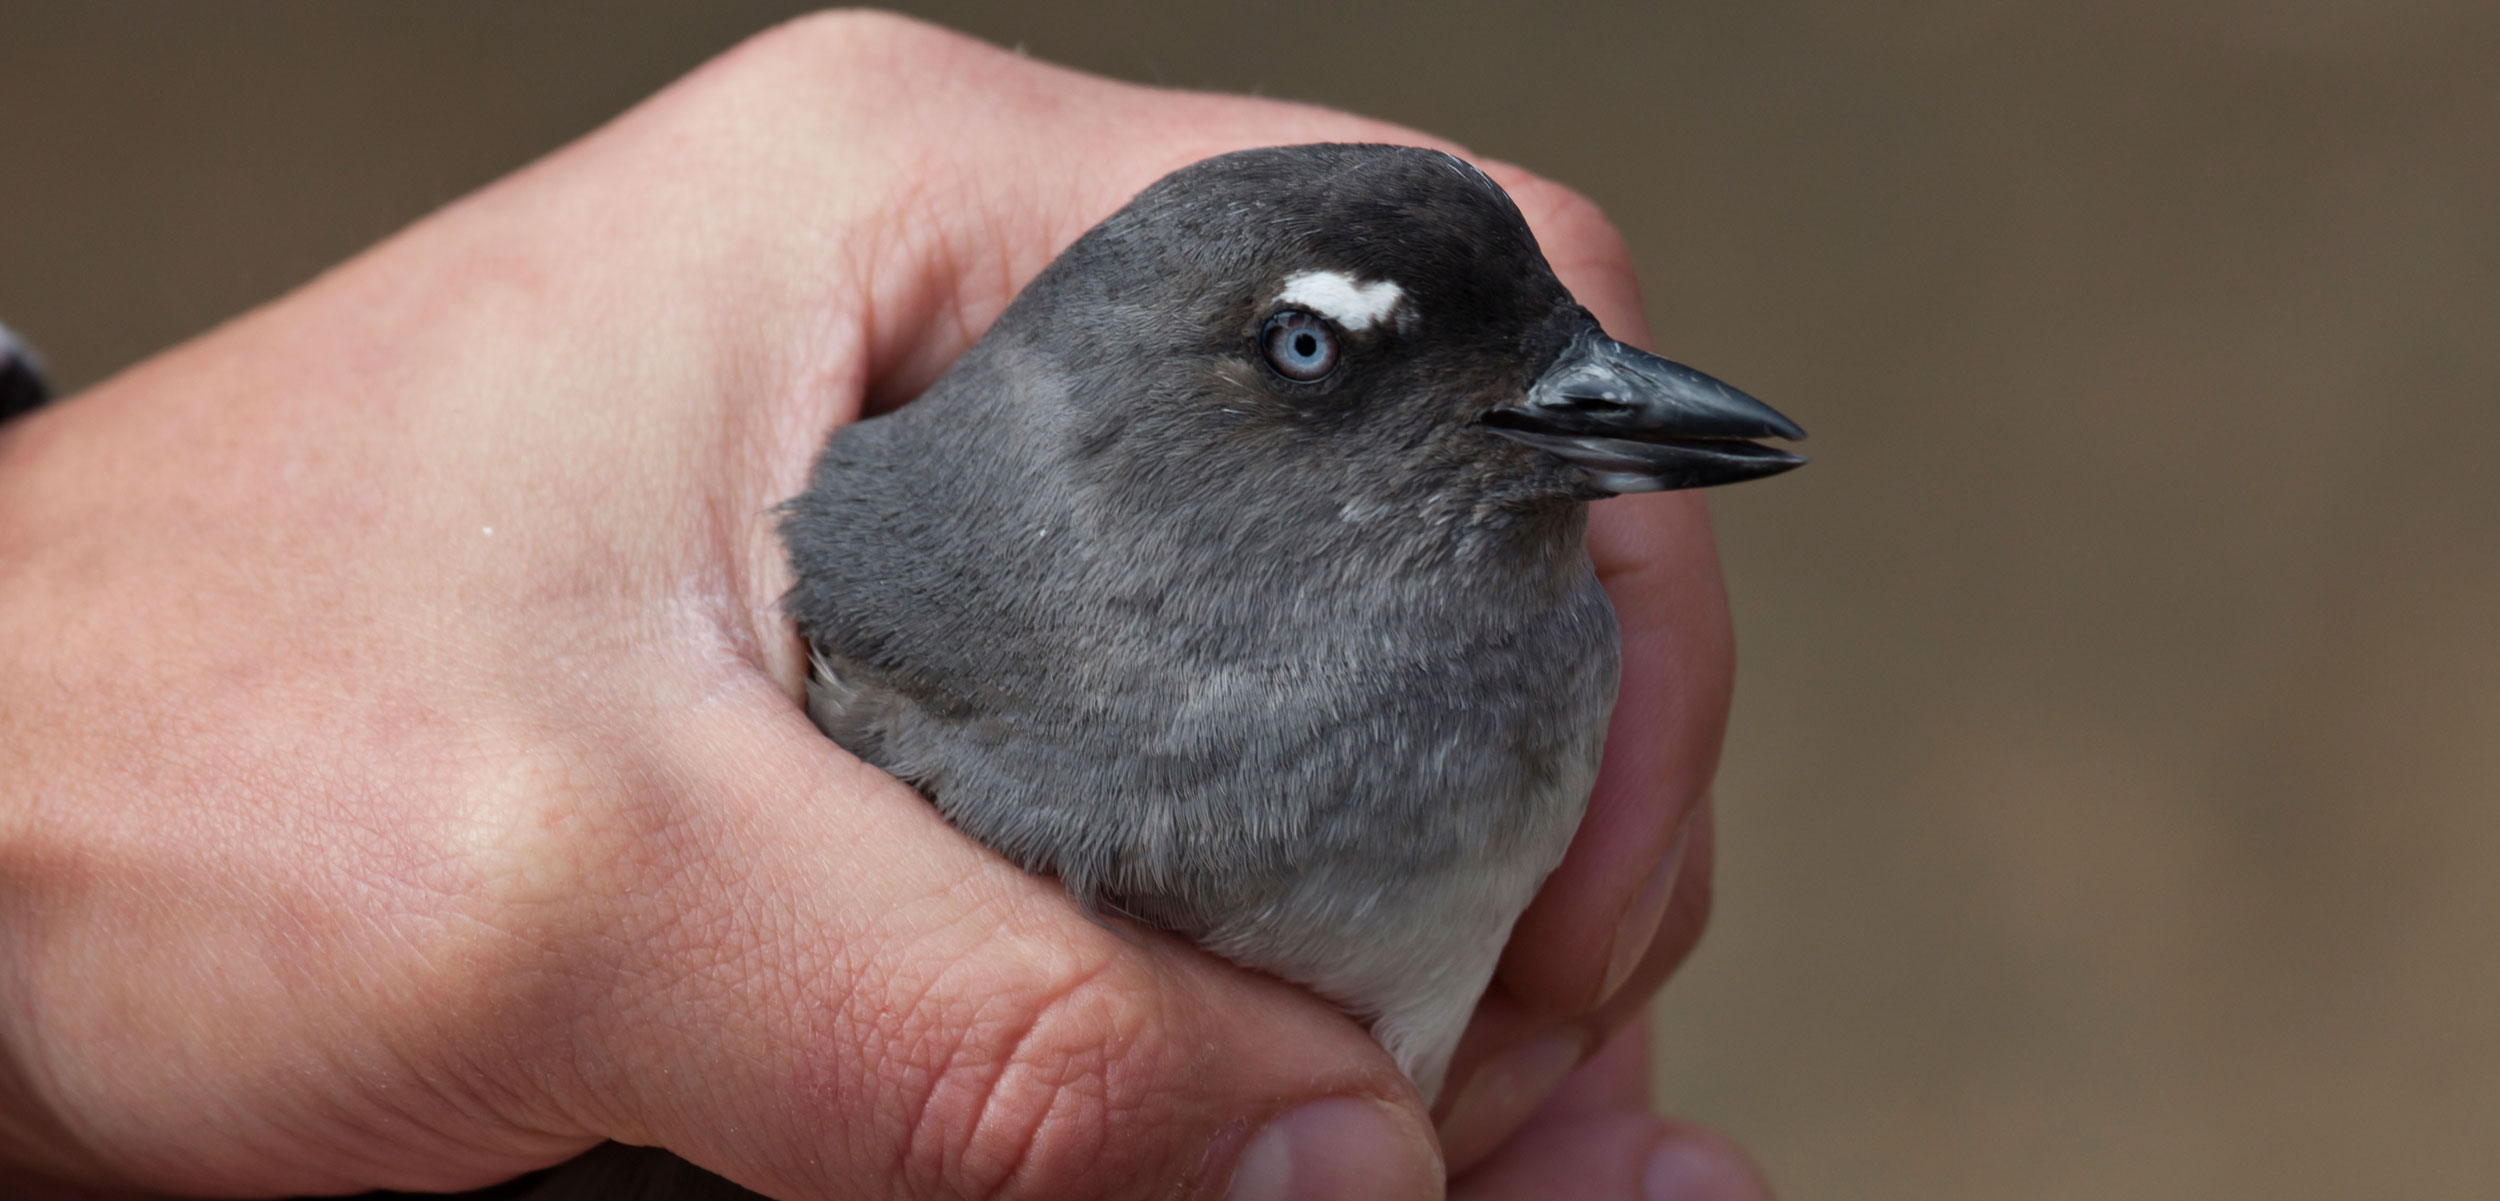 Researcher holding a wild Cassin's Auklet, Ptychoramphus aleuticus